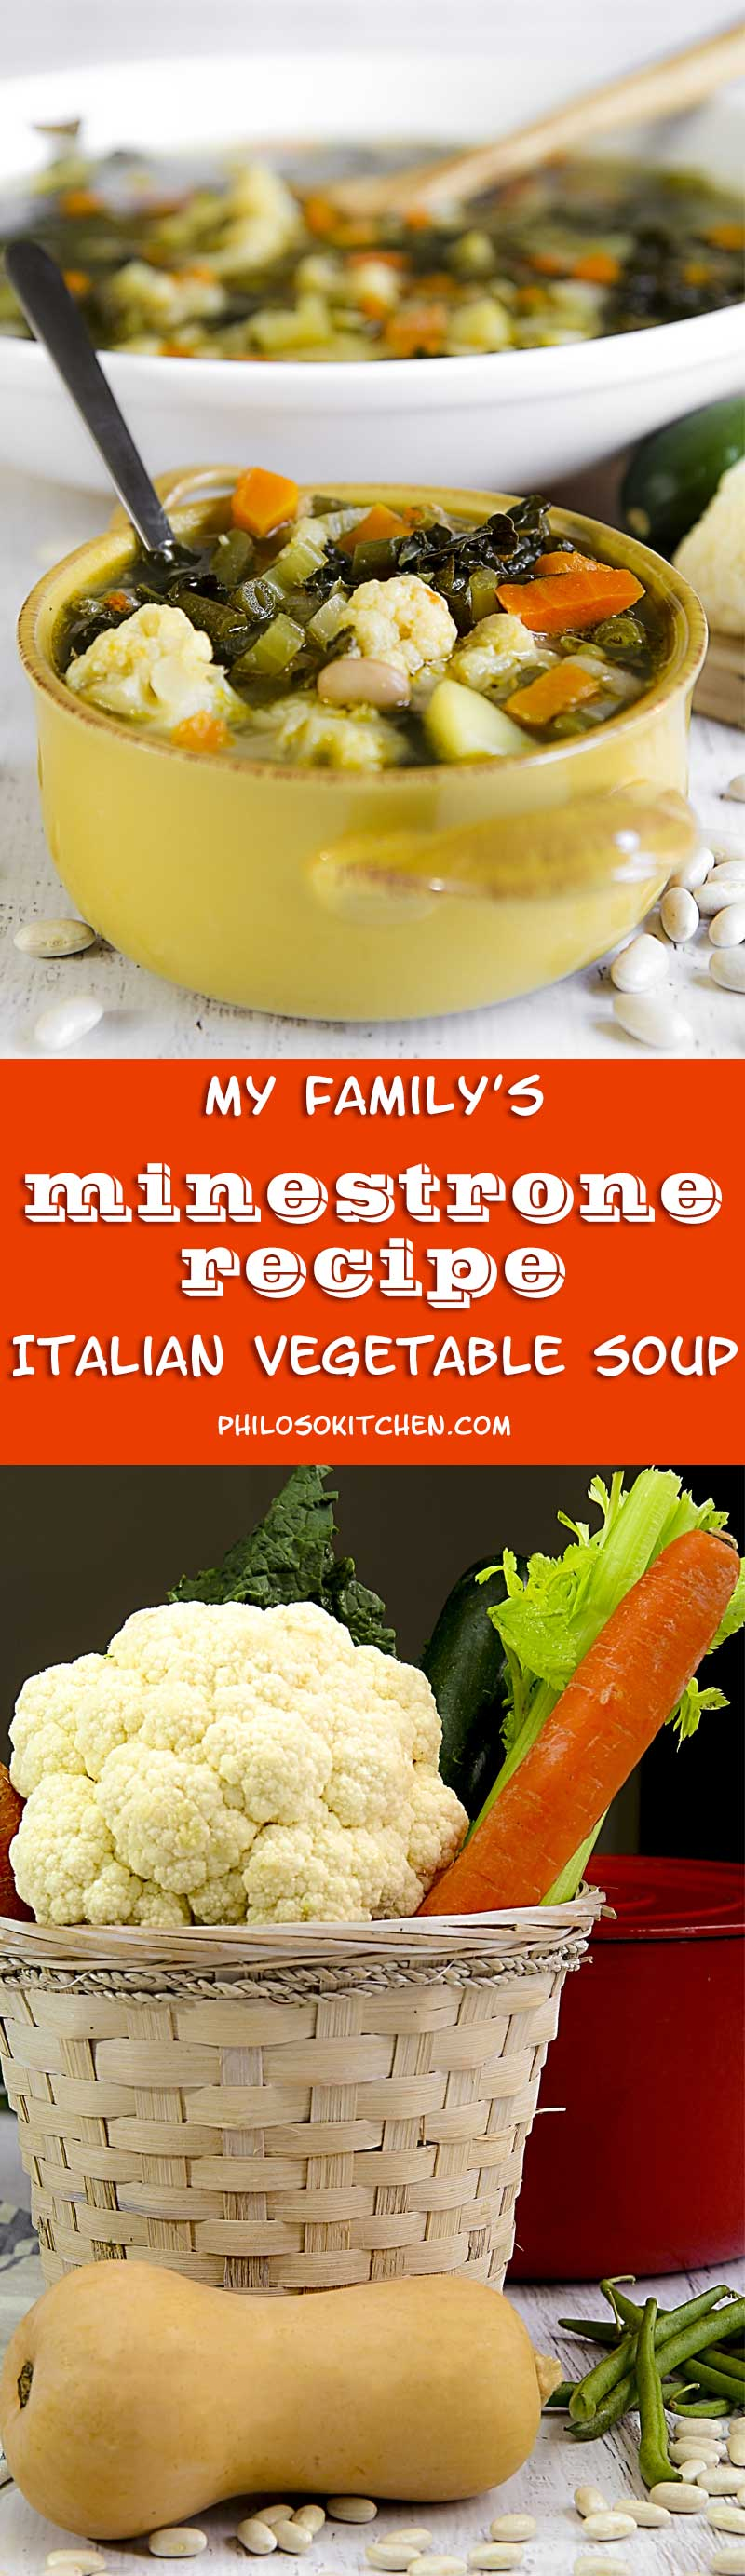 MY MINESTRONE FAMILY RECIPE - Italian vegetable soup